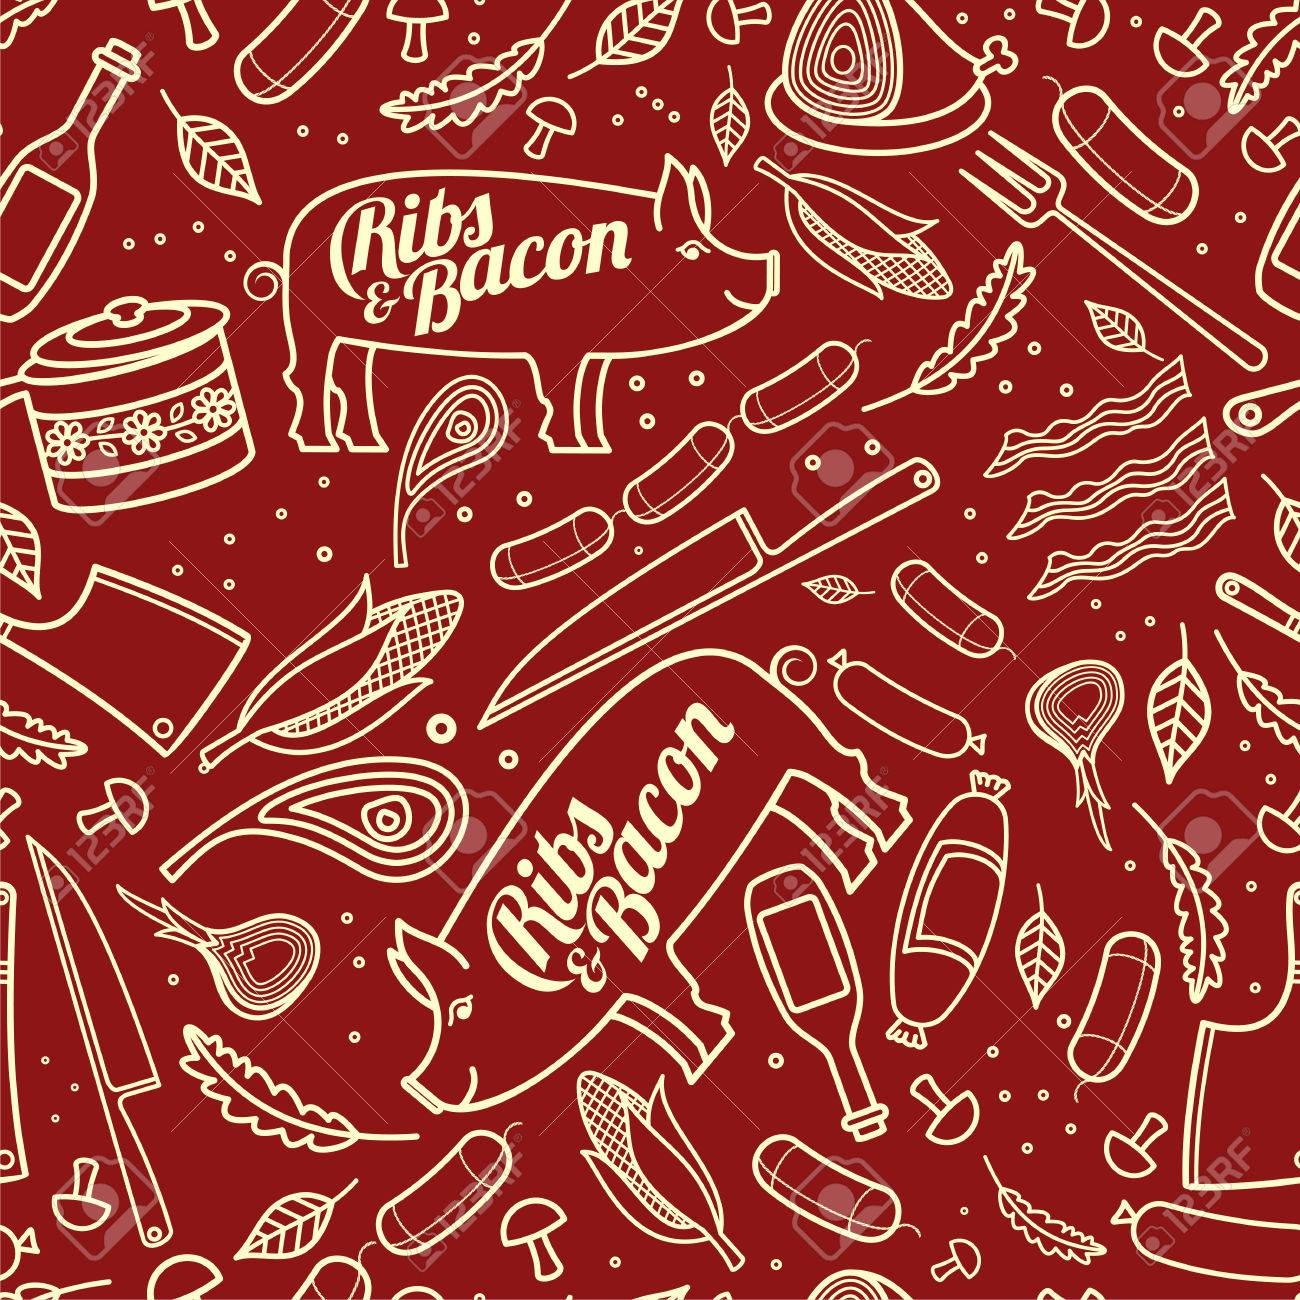 Porc Ribs Bacon Vector Seamless Texture Pattern Can Be Used